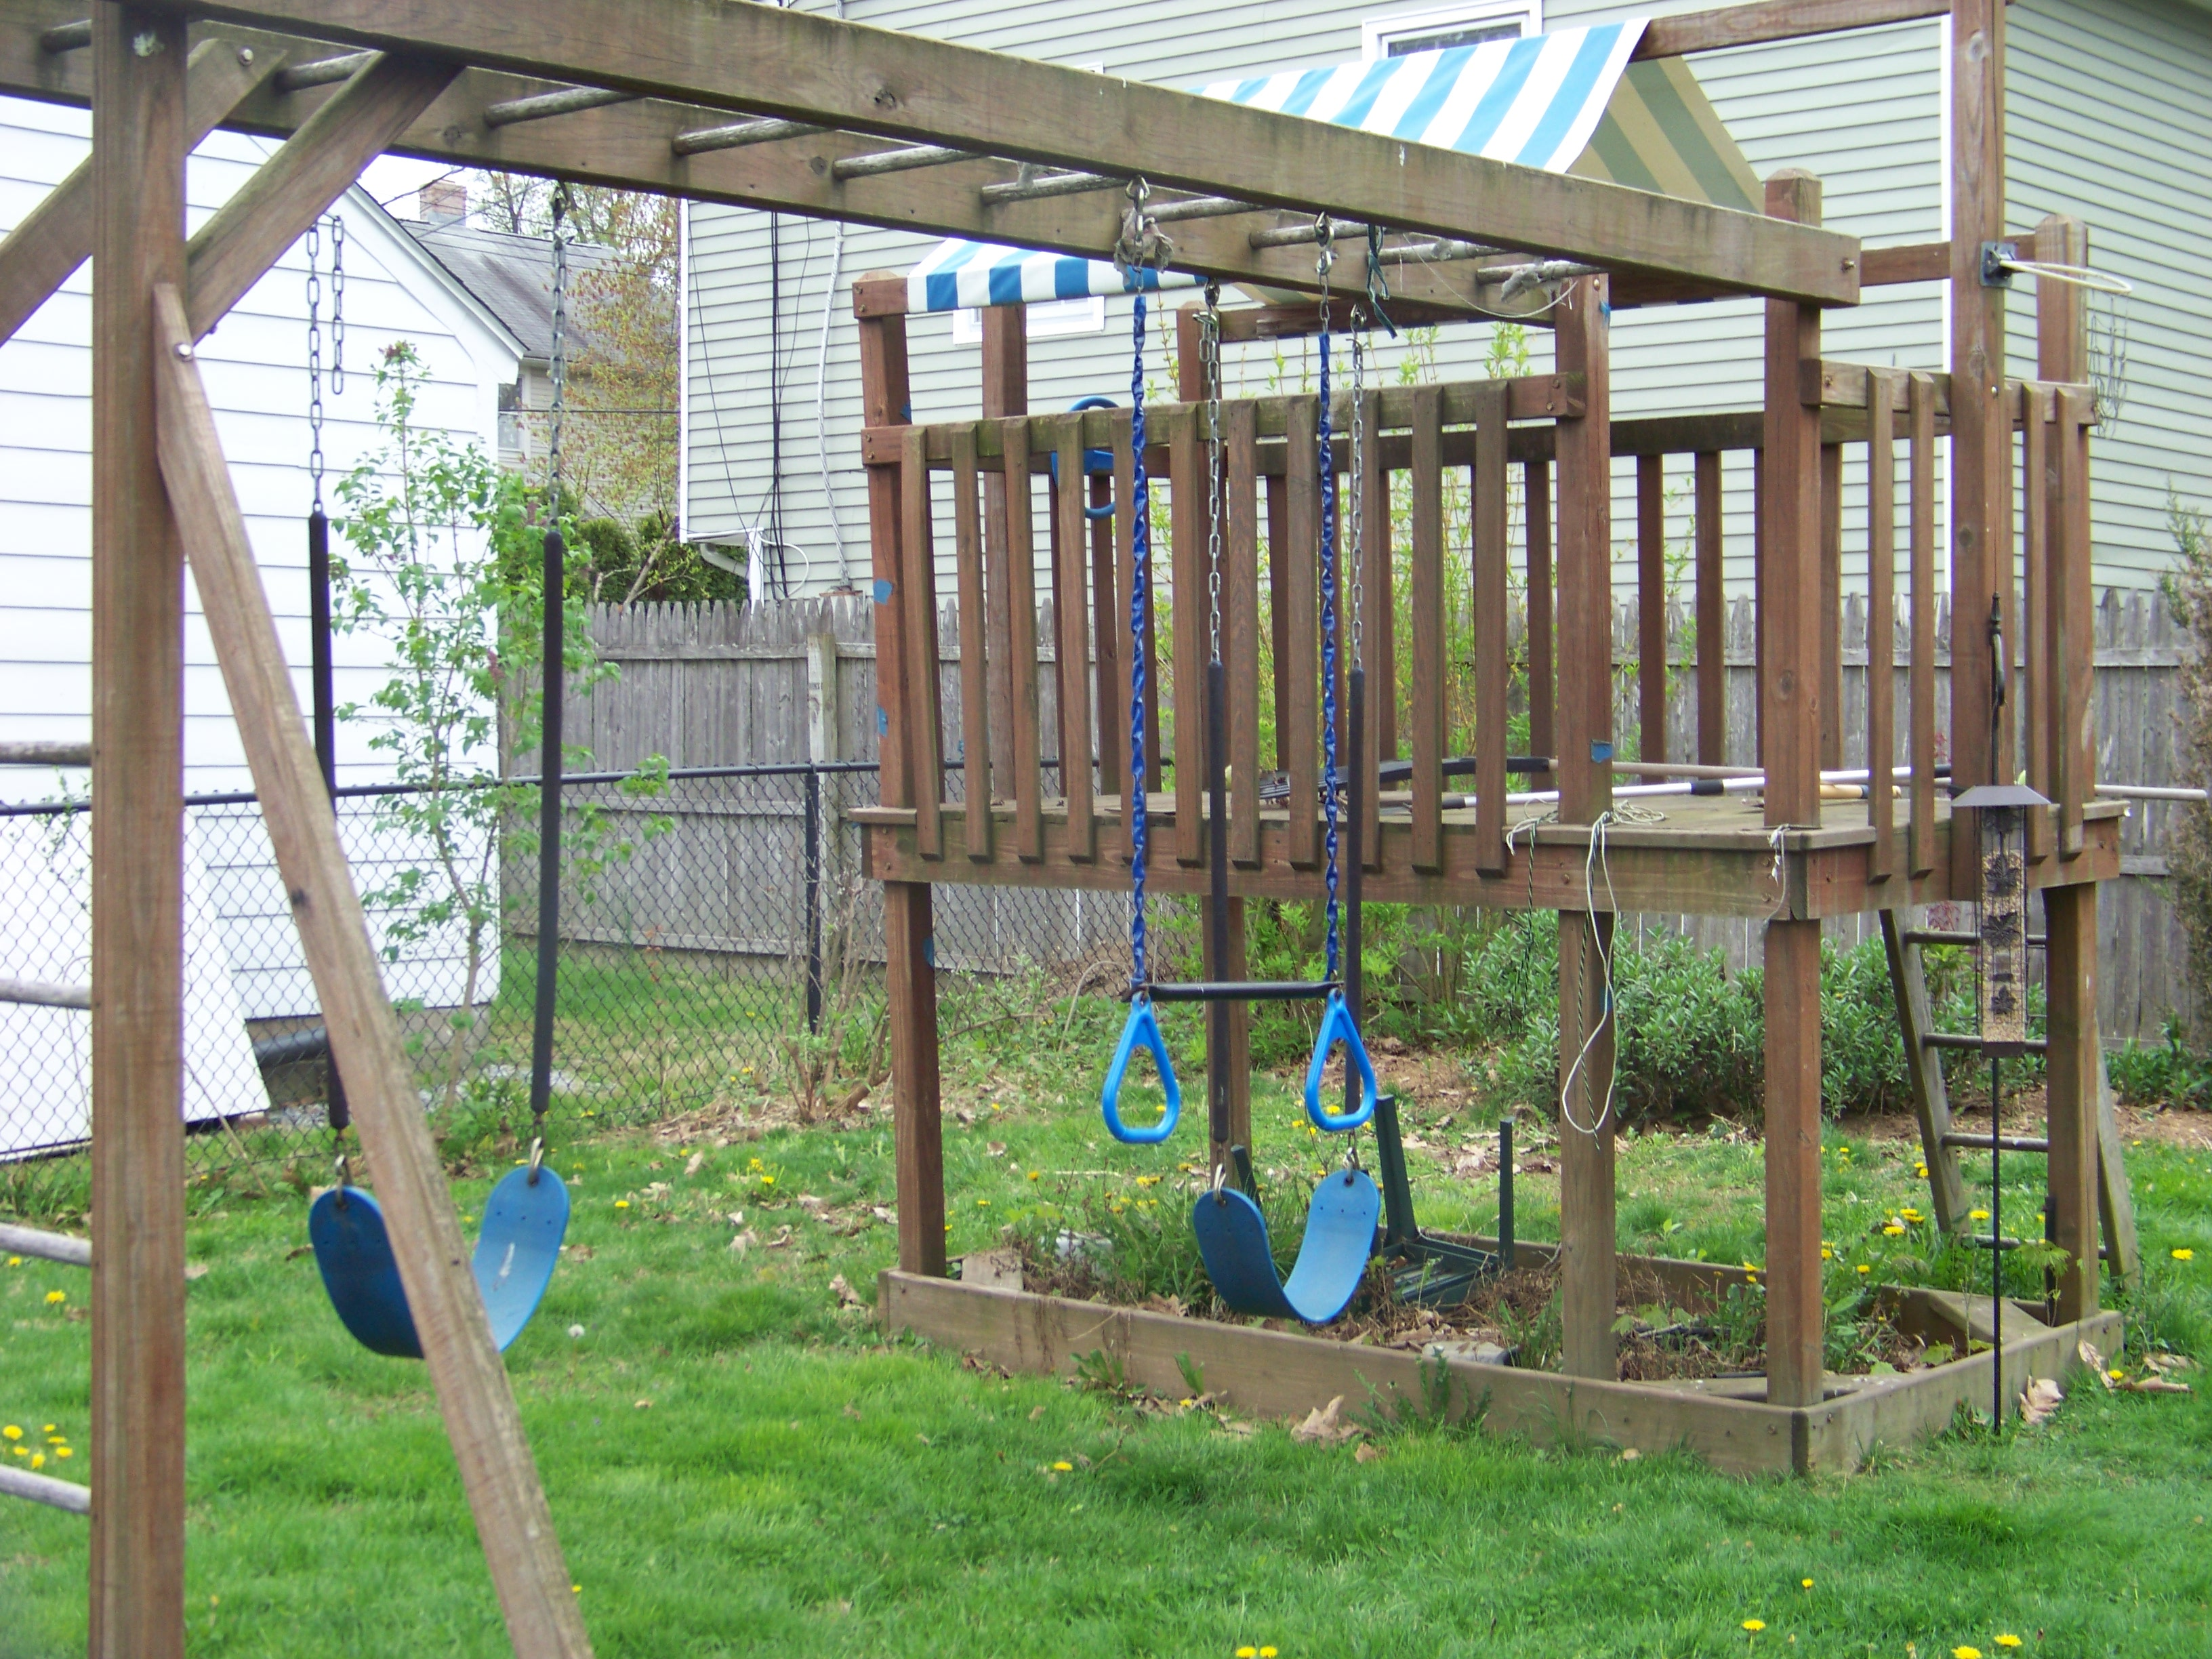 furniture set your garden also and beautiful gorilla swing slide playsets with cafe images to kids for interesting outdoor reviews all how climber sets install